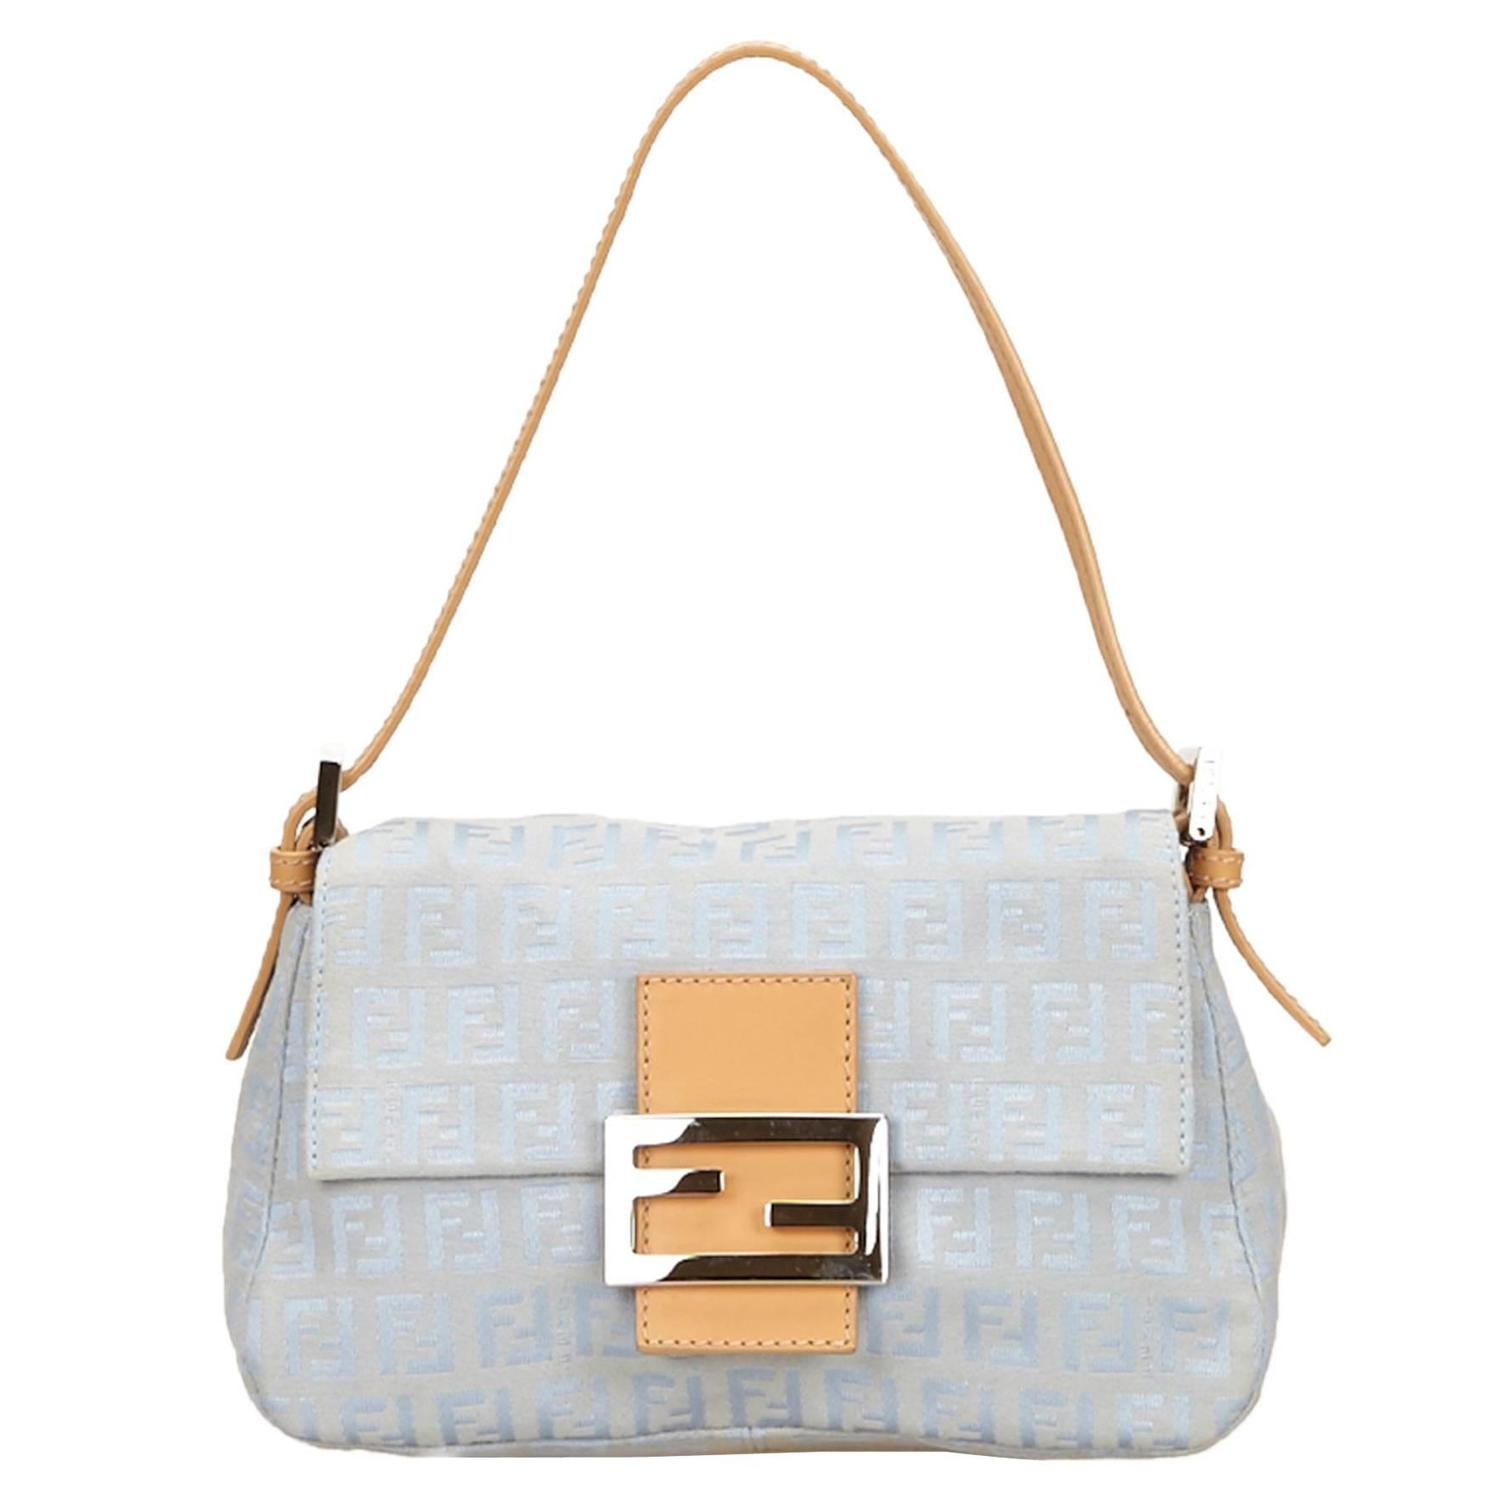 a9145646a9f1 Fendi Jacquard Blue Zucchino Baguette Hand Bag For Sale at 1stdibs